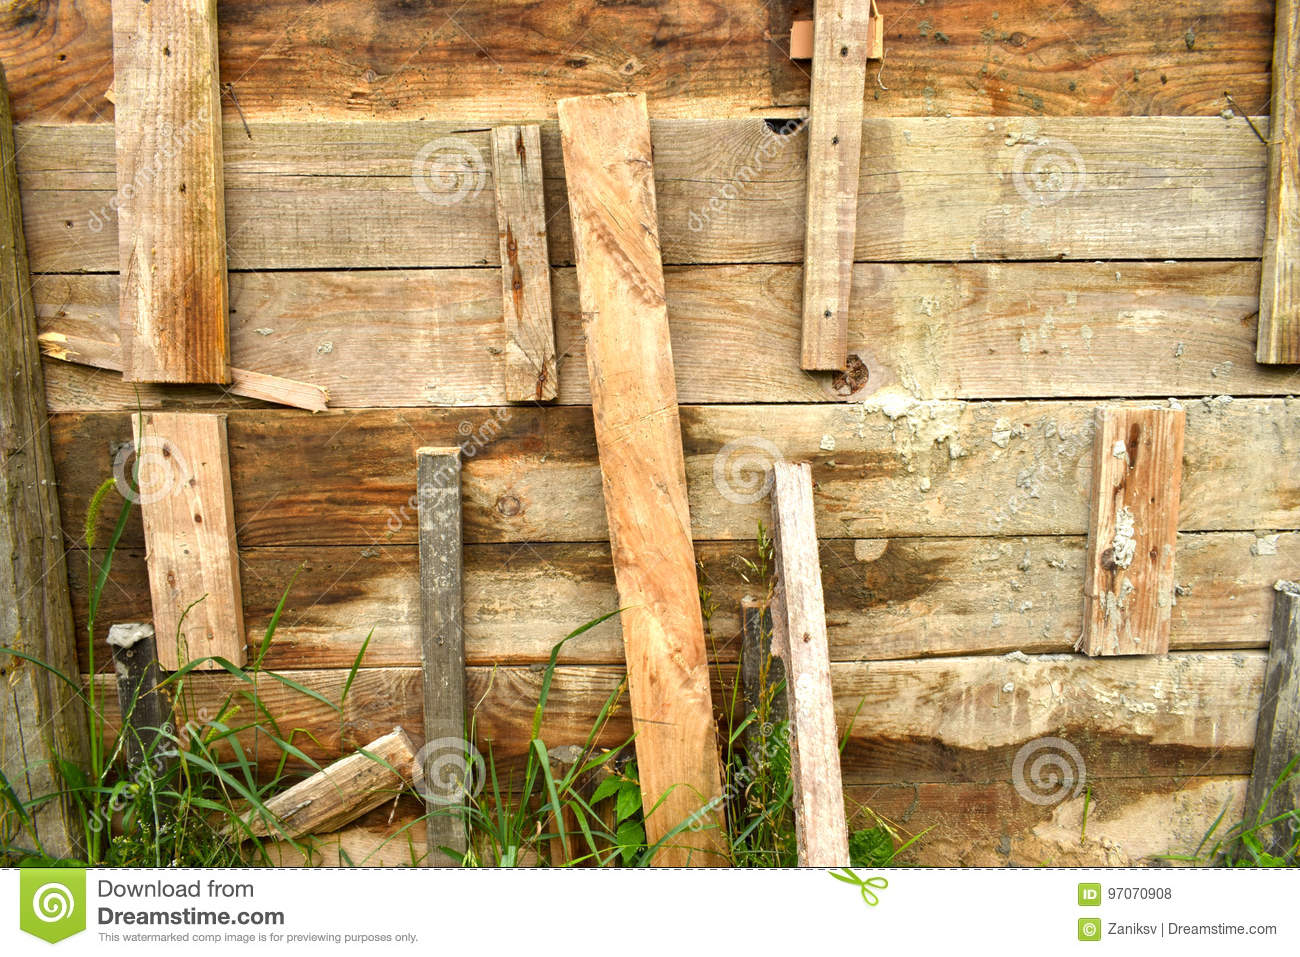 Timber formwork stock photo  Image of detail, outdoor - 97070908